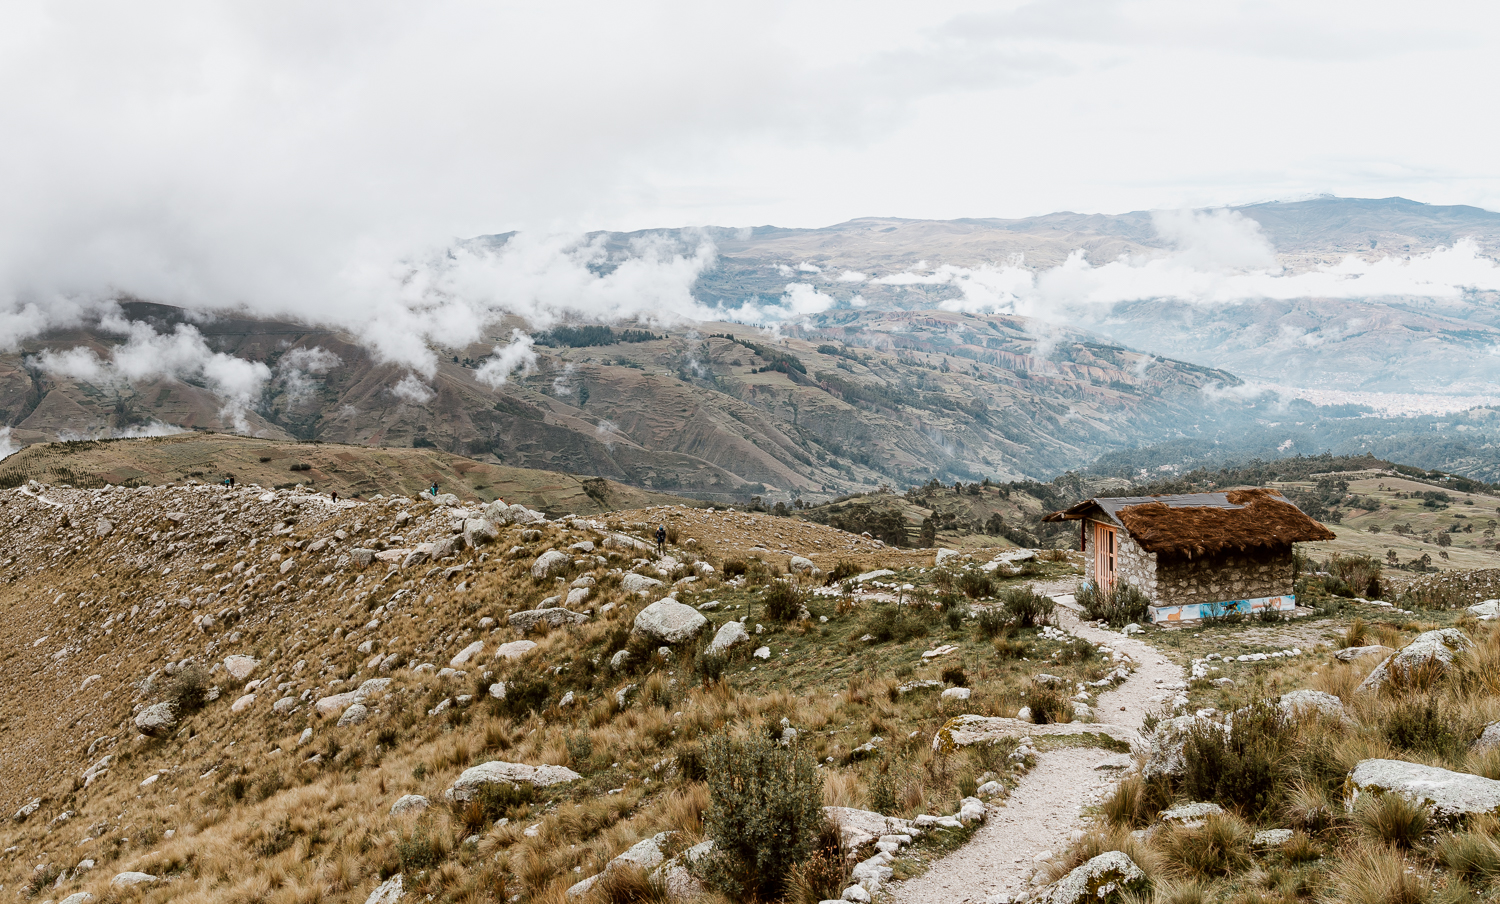 Altitude sickness in South America